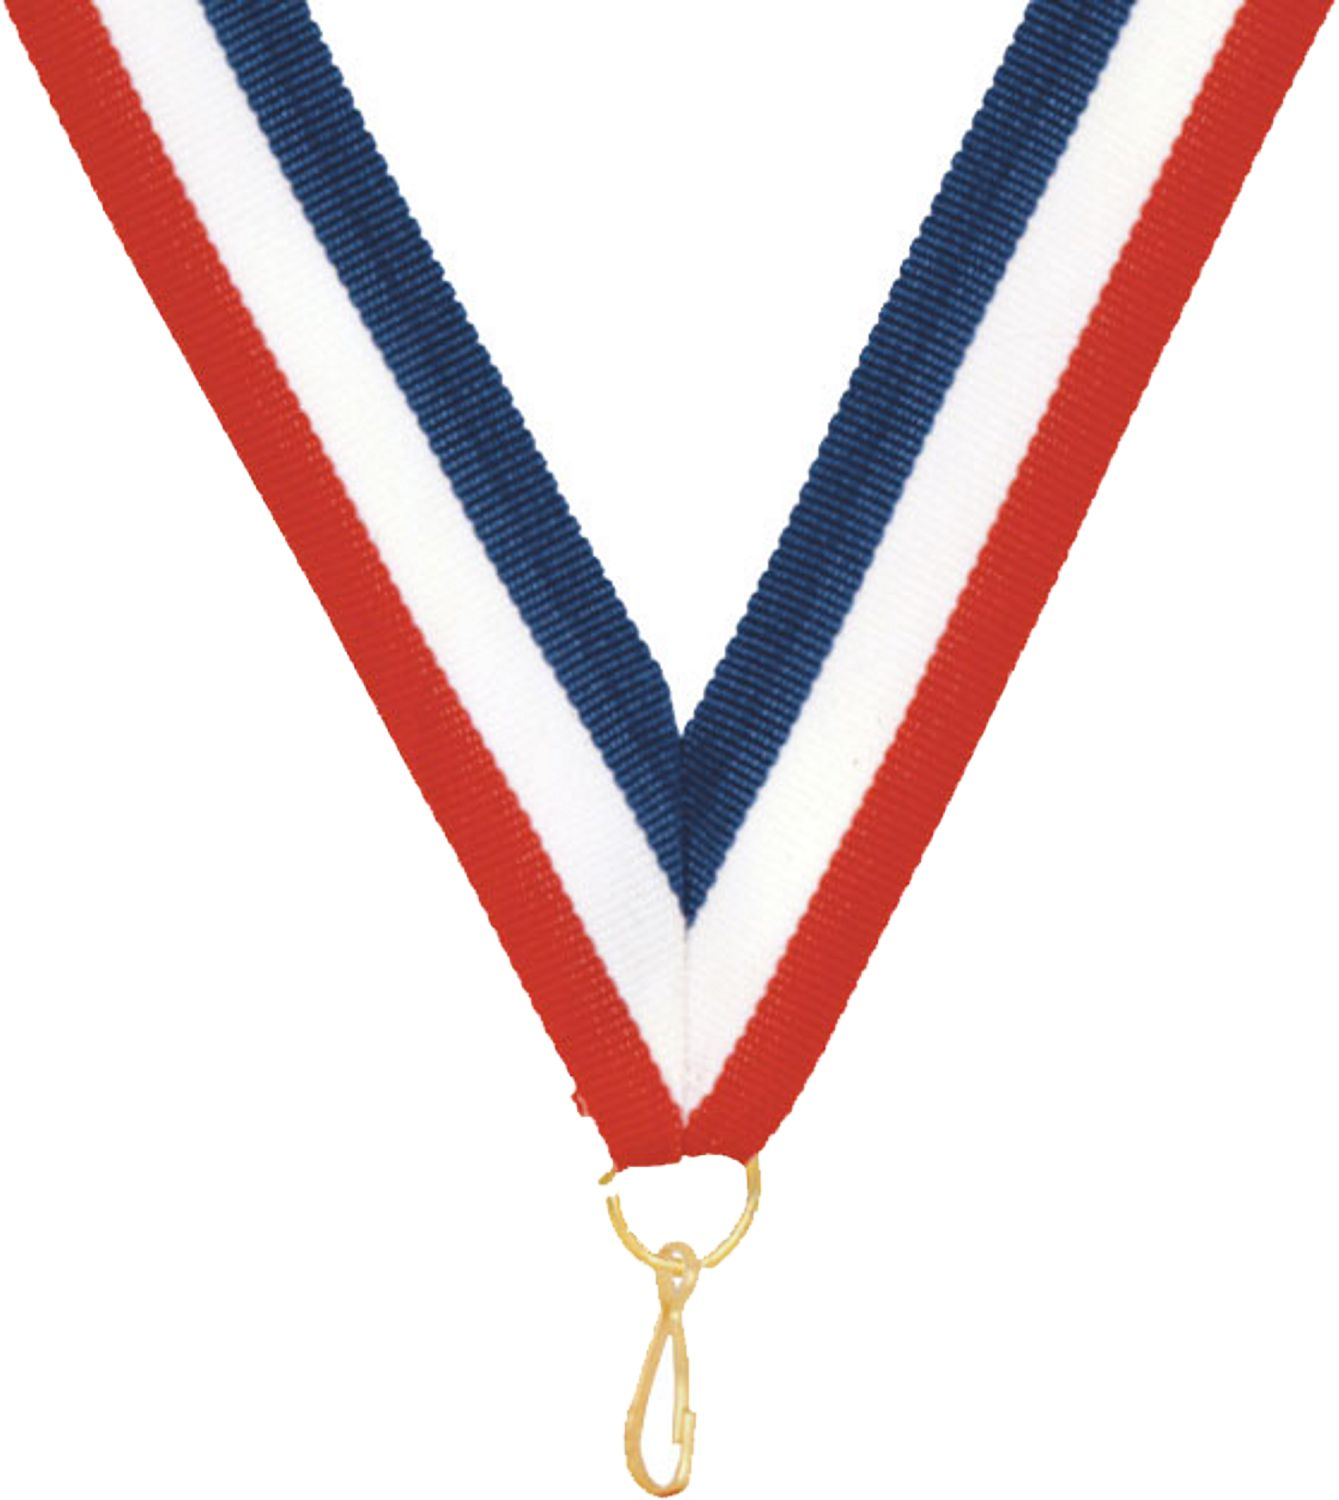 Medal ribbon.jpg